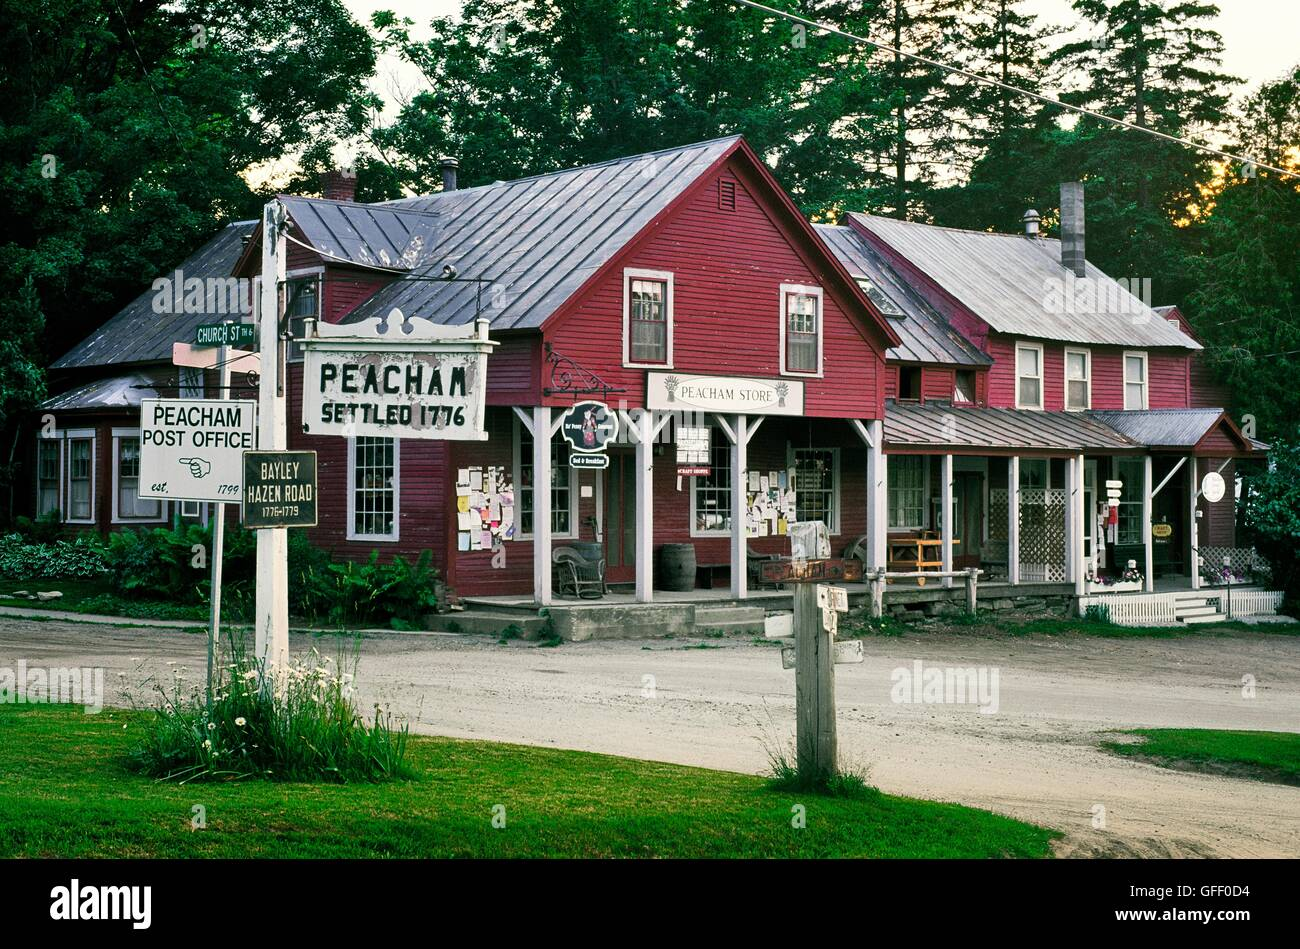 Signs And The Peacham Store And Craft Shop In The Old New England